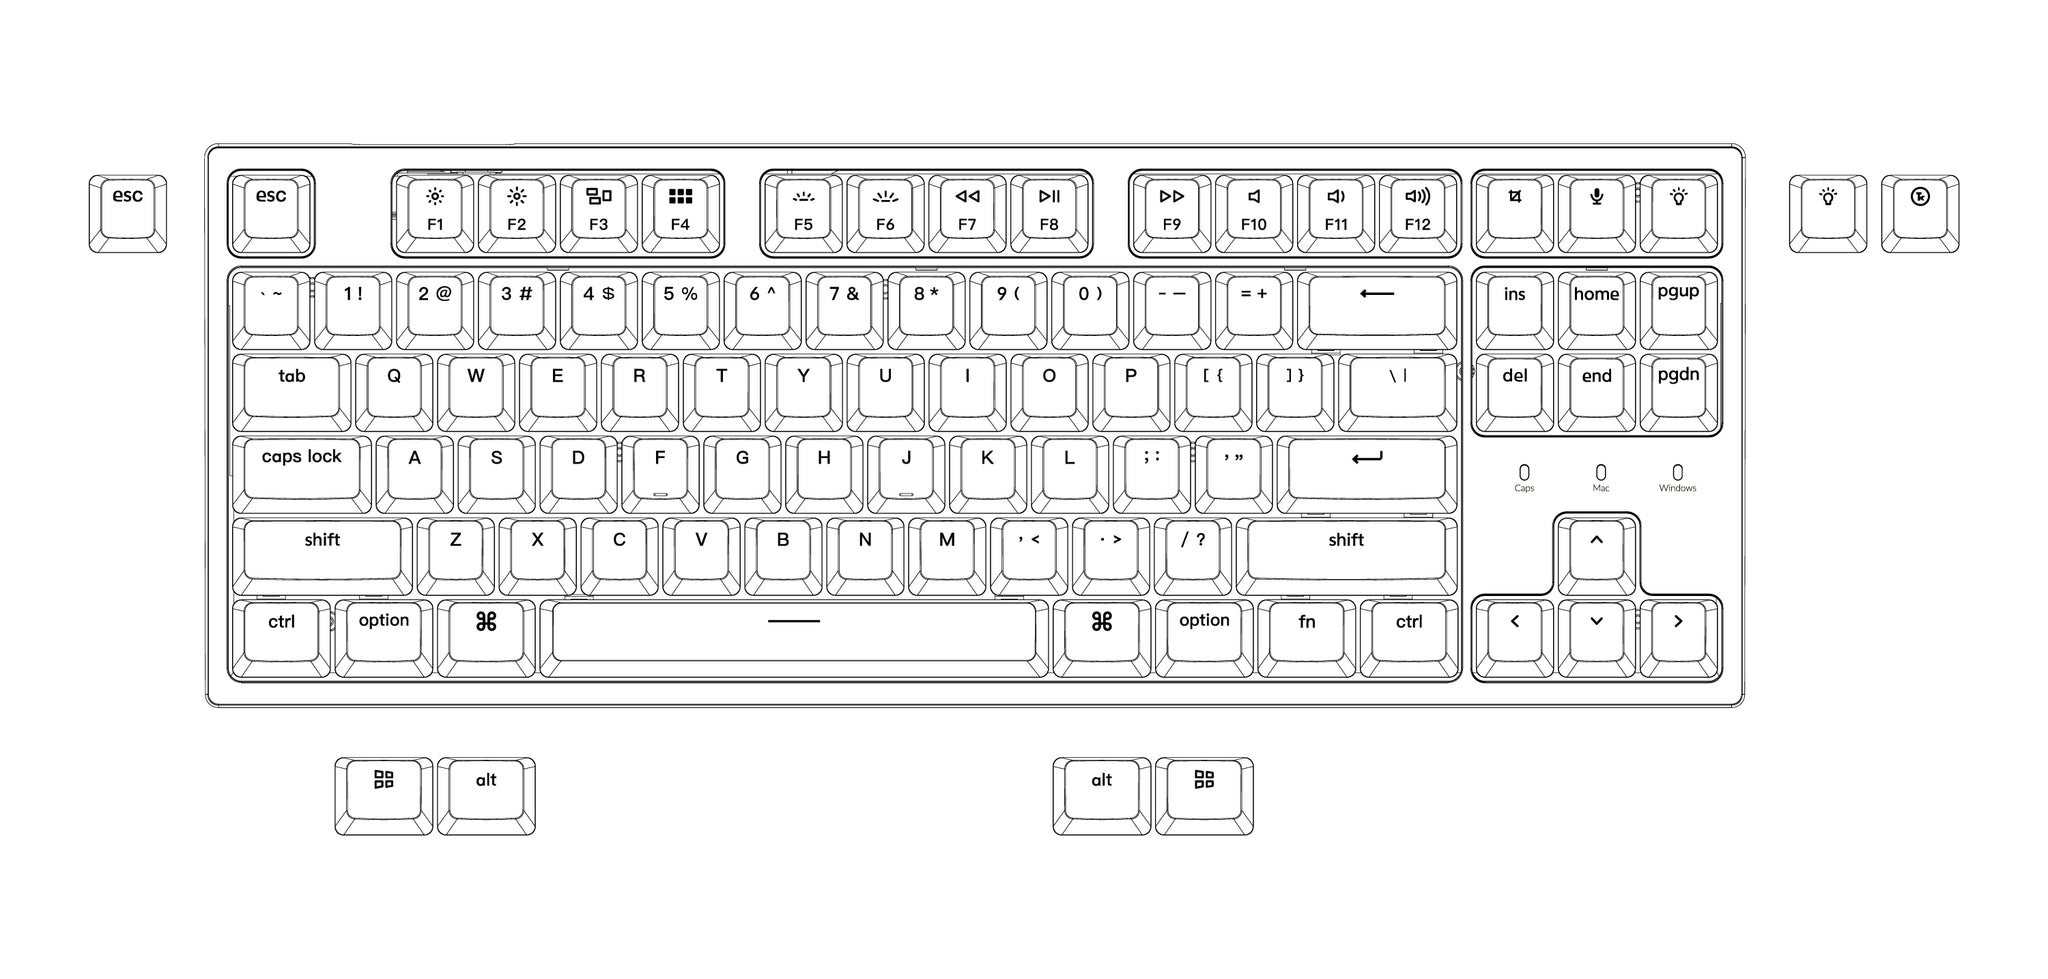 Keychron C1 hot-swappable wired type-c mechanical keyboard tenkeyless layout for Mac Windows iOS Gateron switch red blue brown RGB backlight HD Keycap Photo